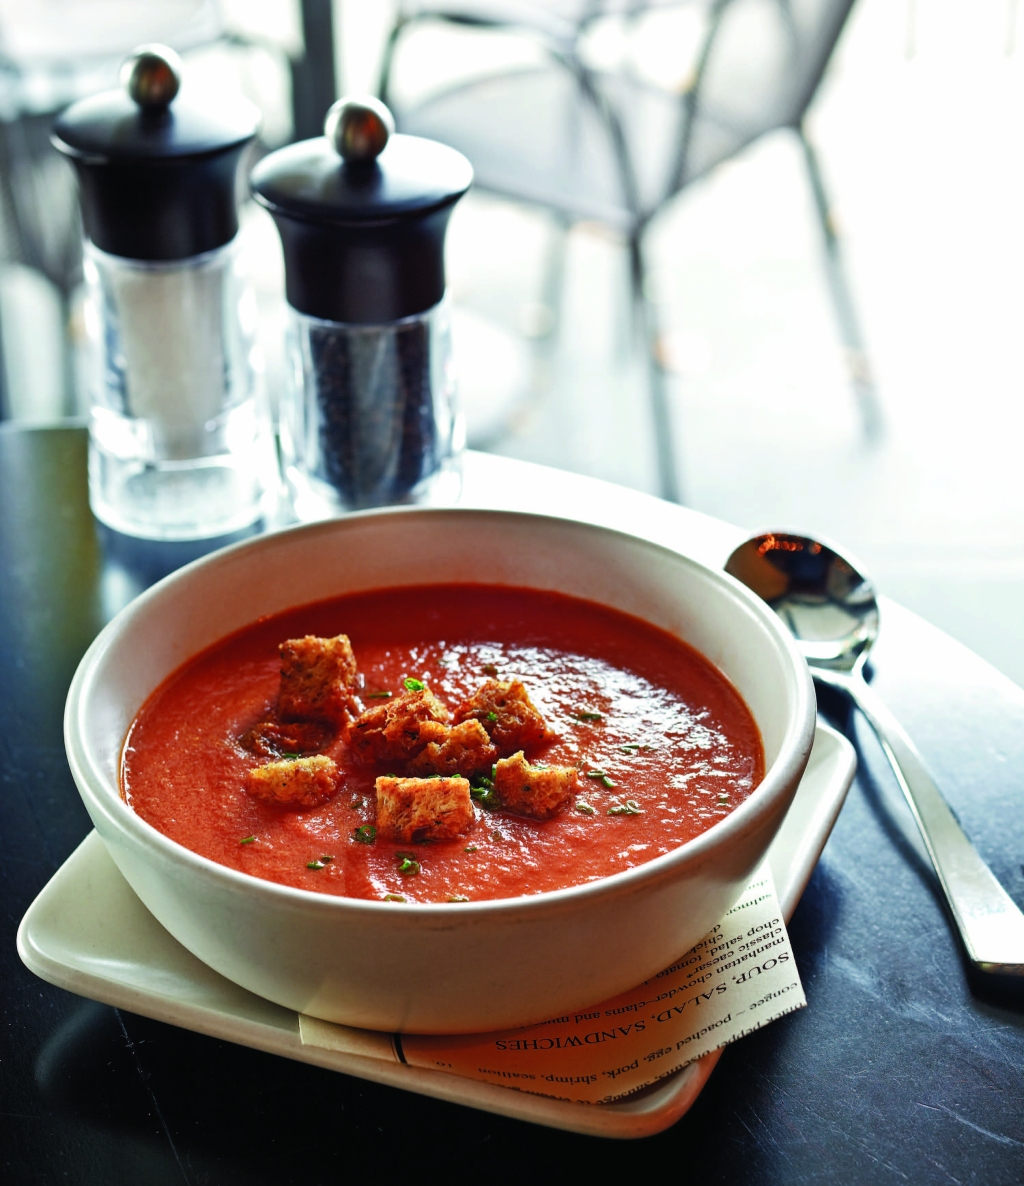 Tom's-Tasty-Tomato-Soup